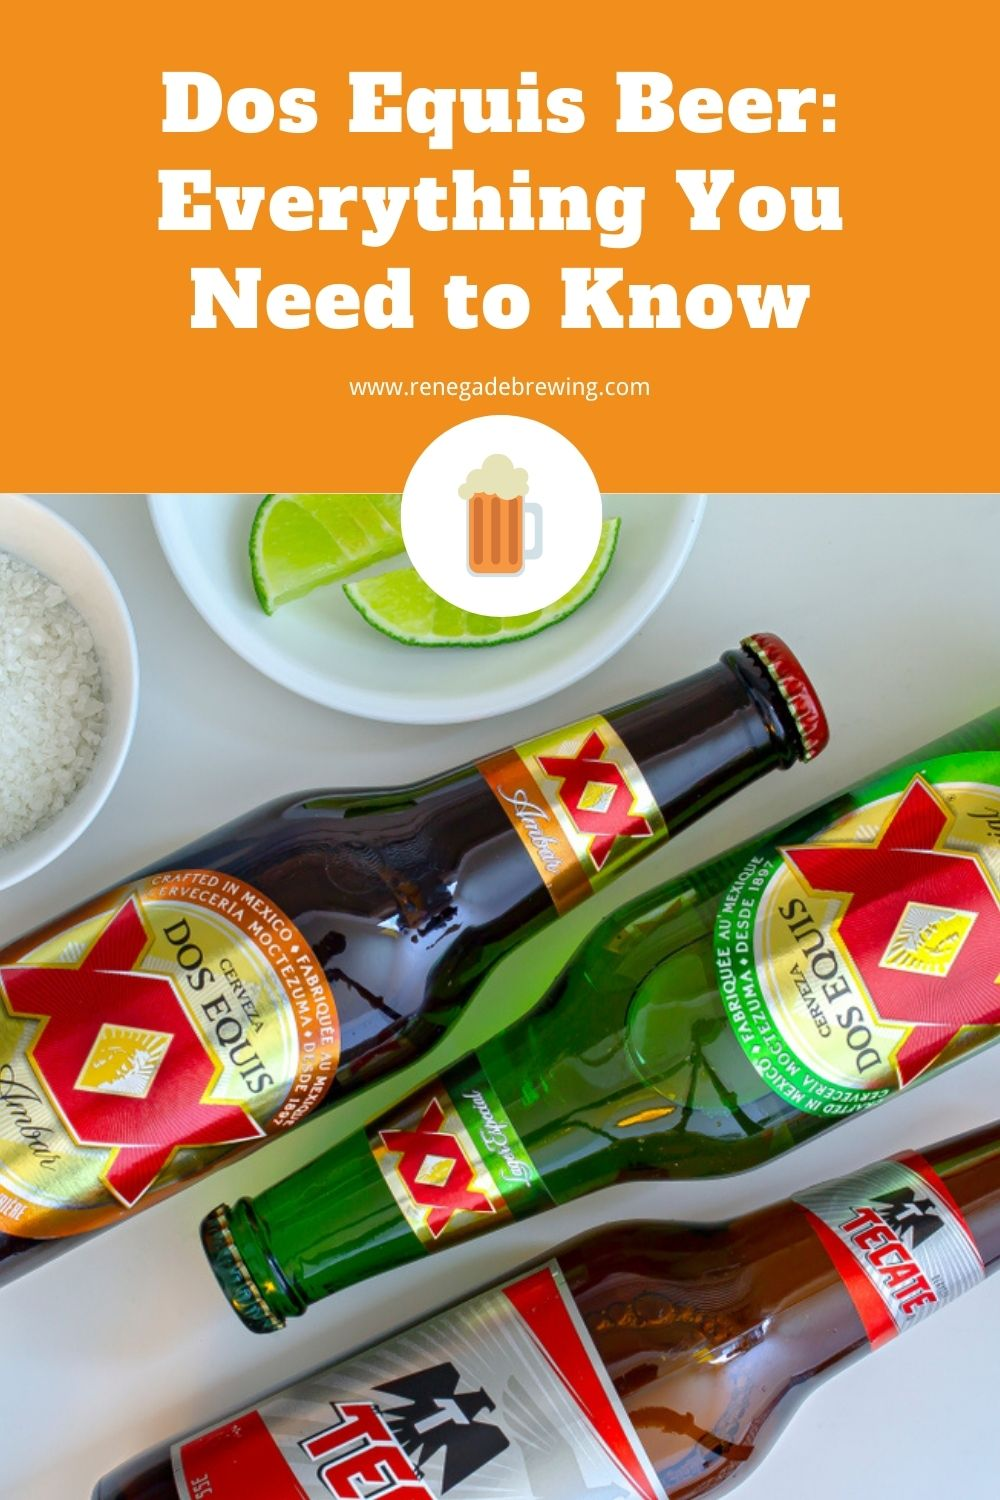 Dos Equis Beer Everything You Need to Know 1